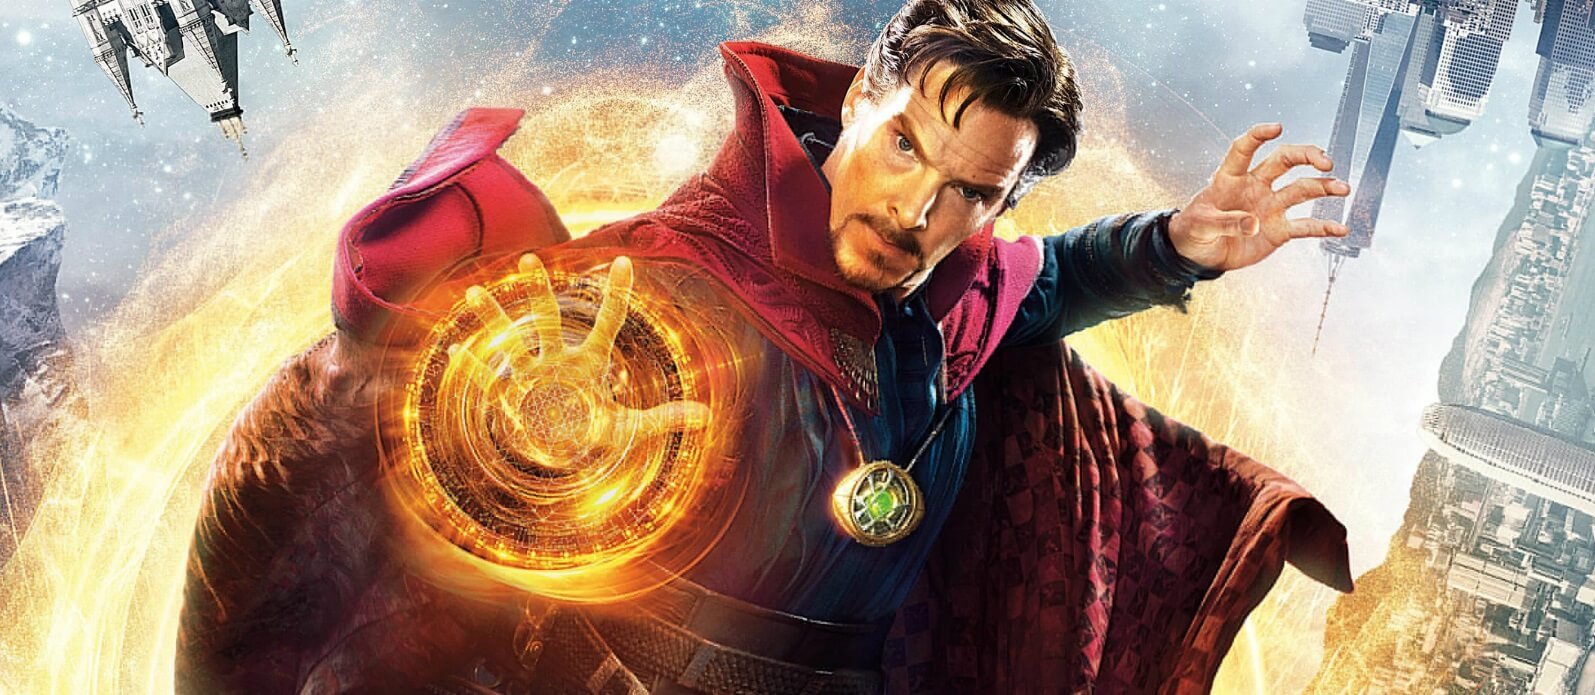 Doctor strange movie box office predictions    1